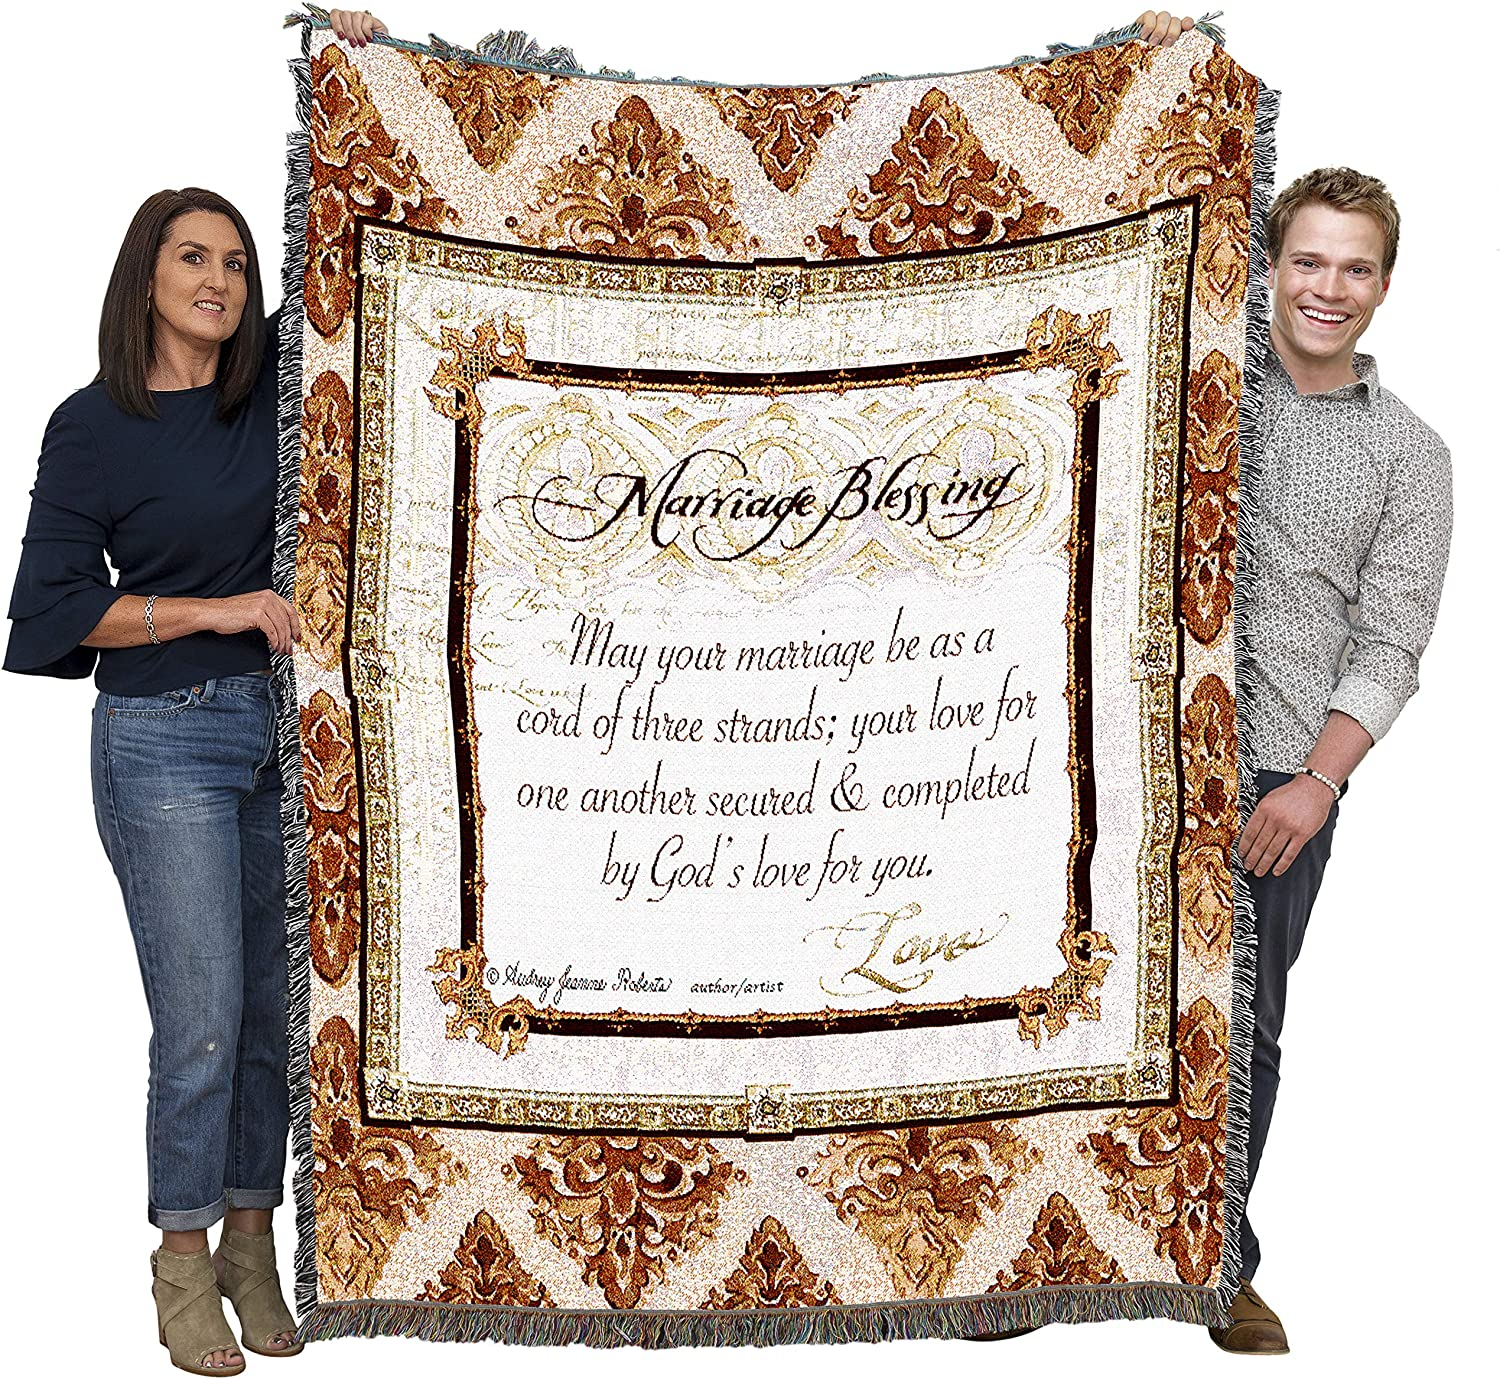 B001GDOS1C Pure Country Weavers Marriage Blessing Blanket A120rEYHGKL